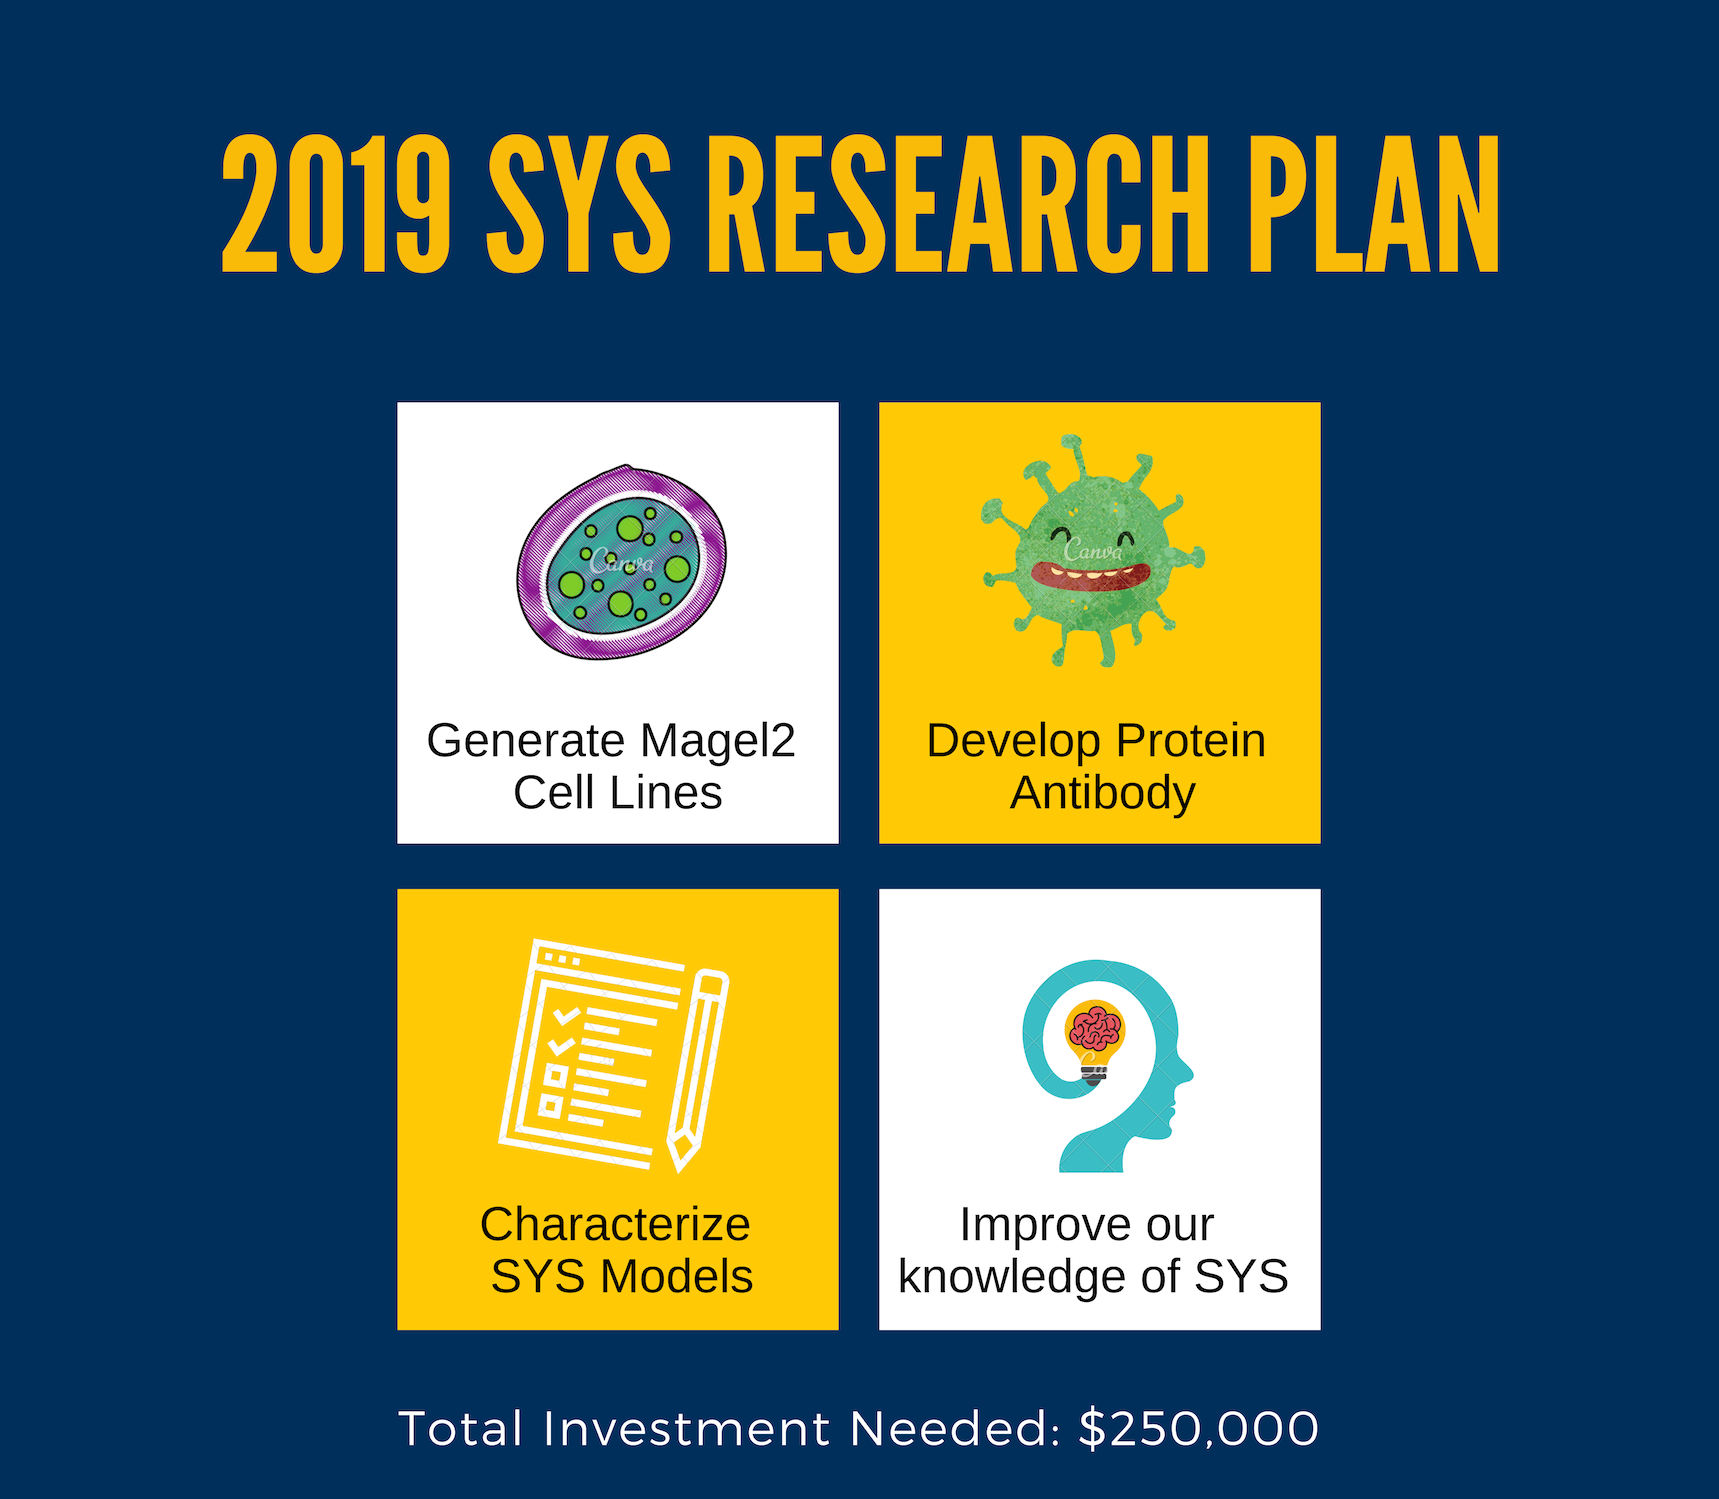 Sys research plan 2019 (1)